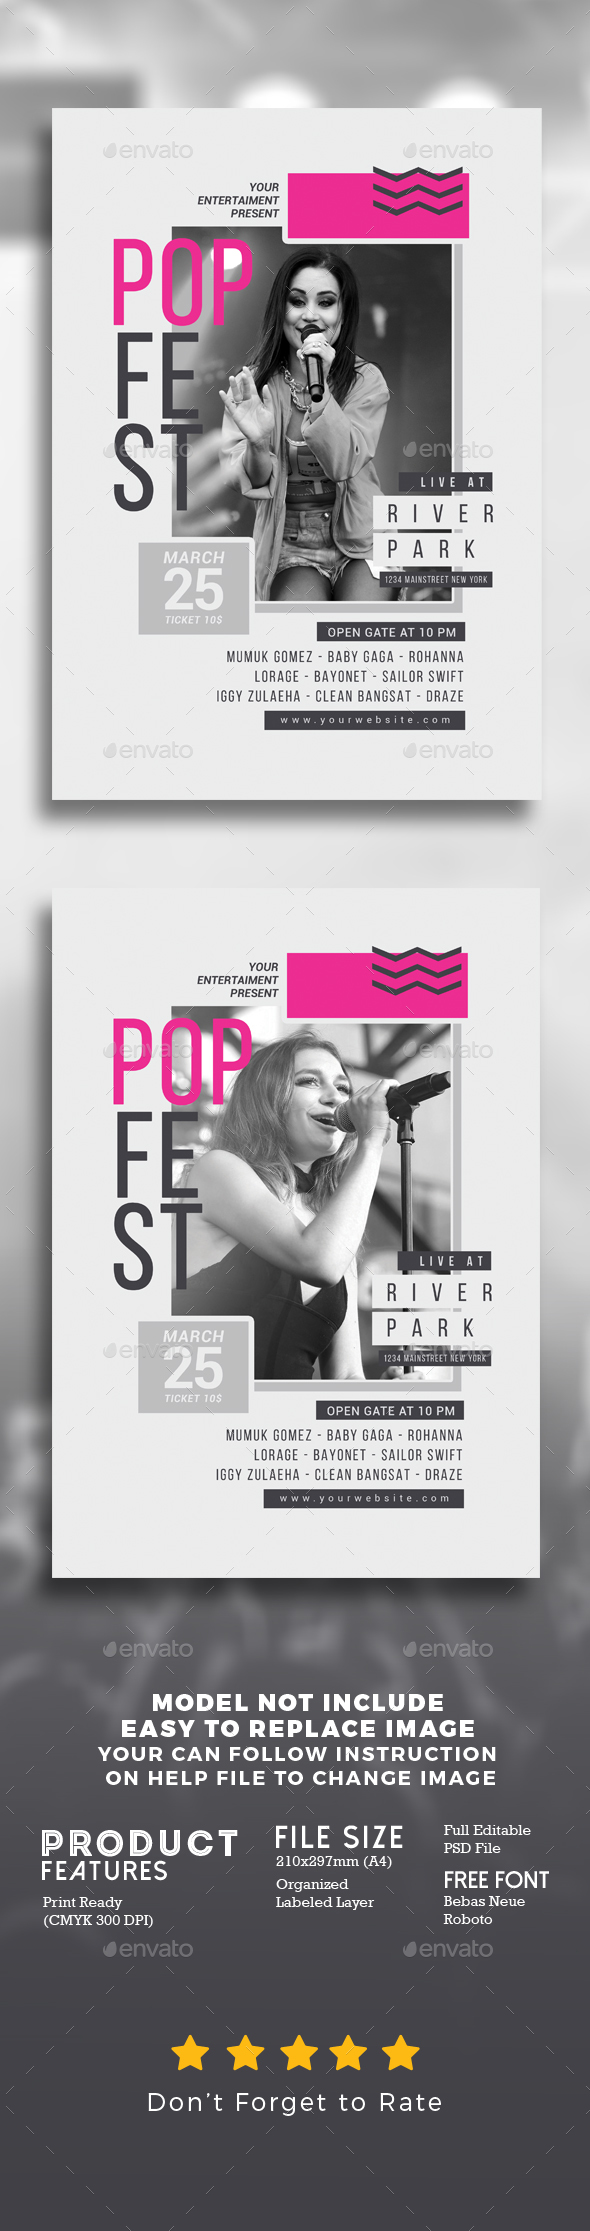 Pop Music Festival - Events Flyers